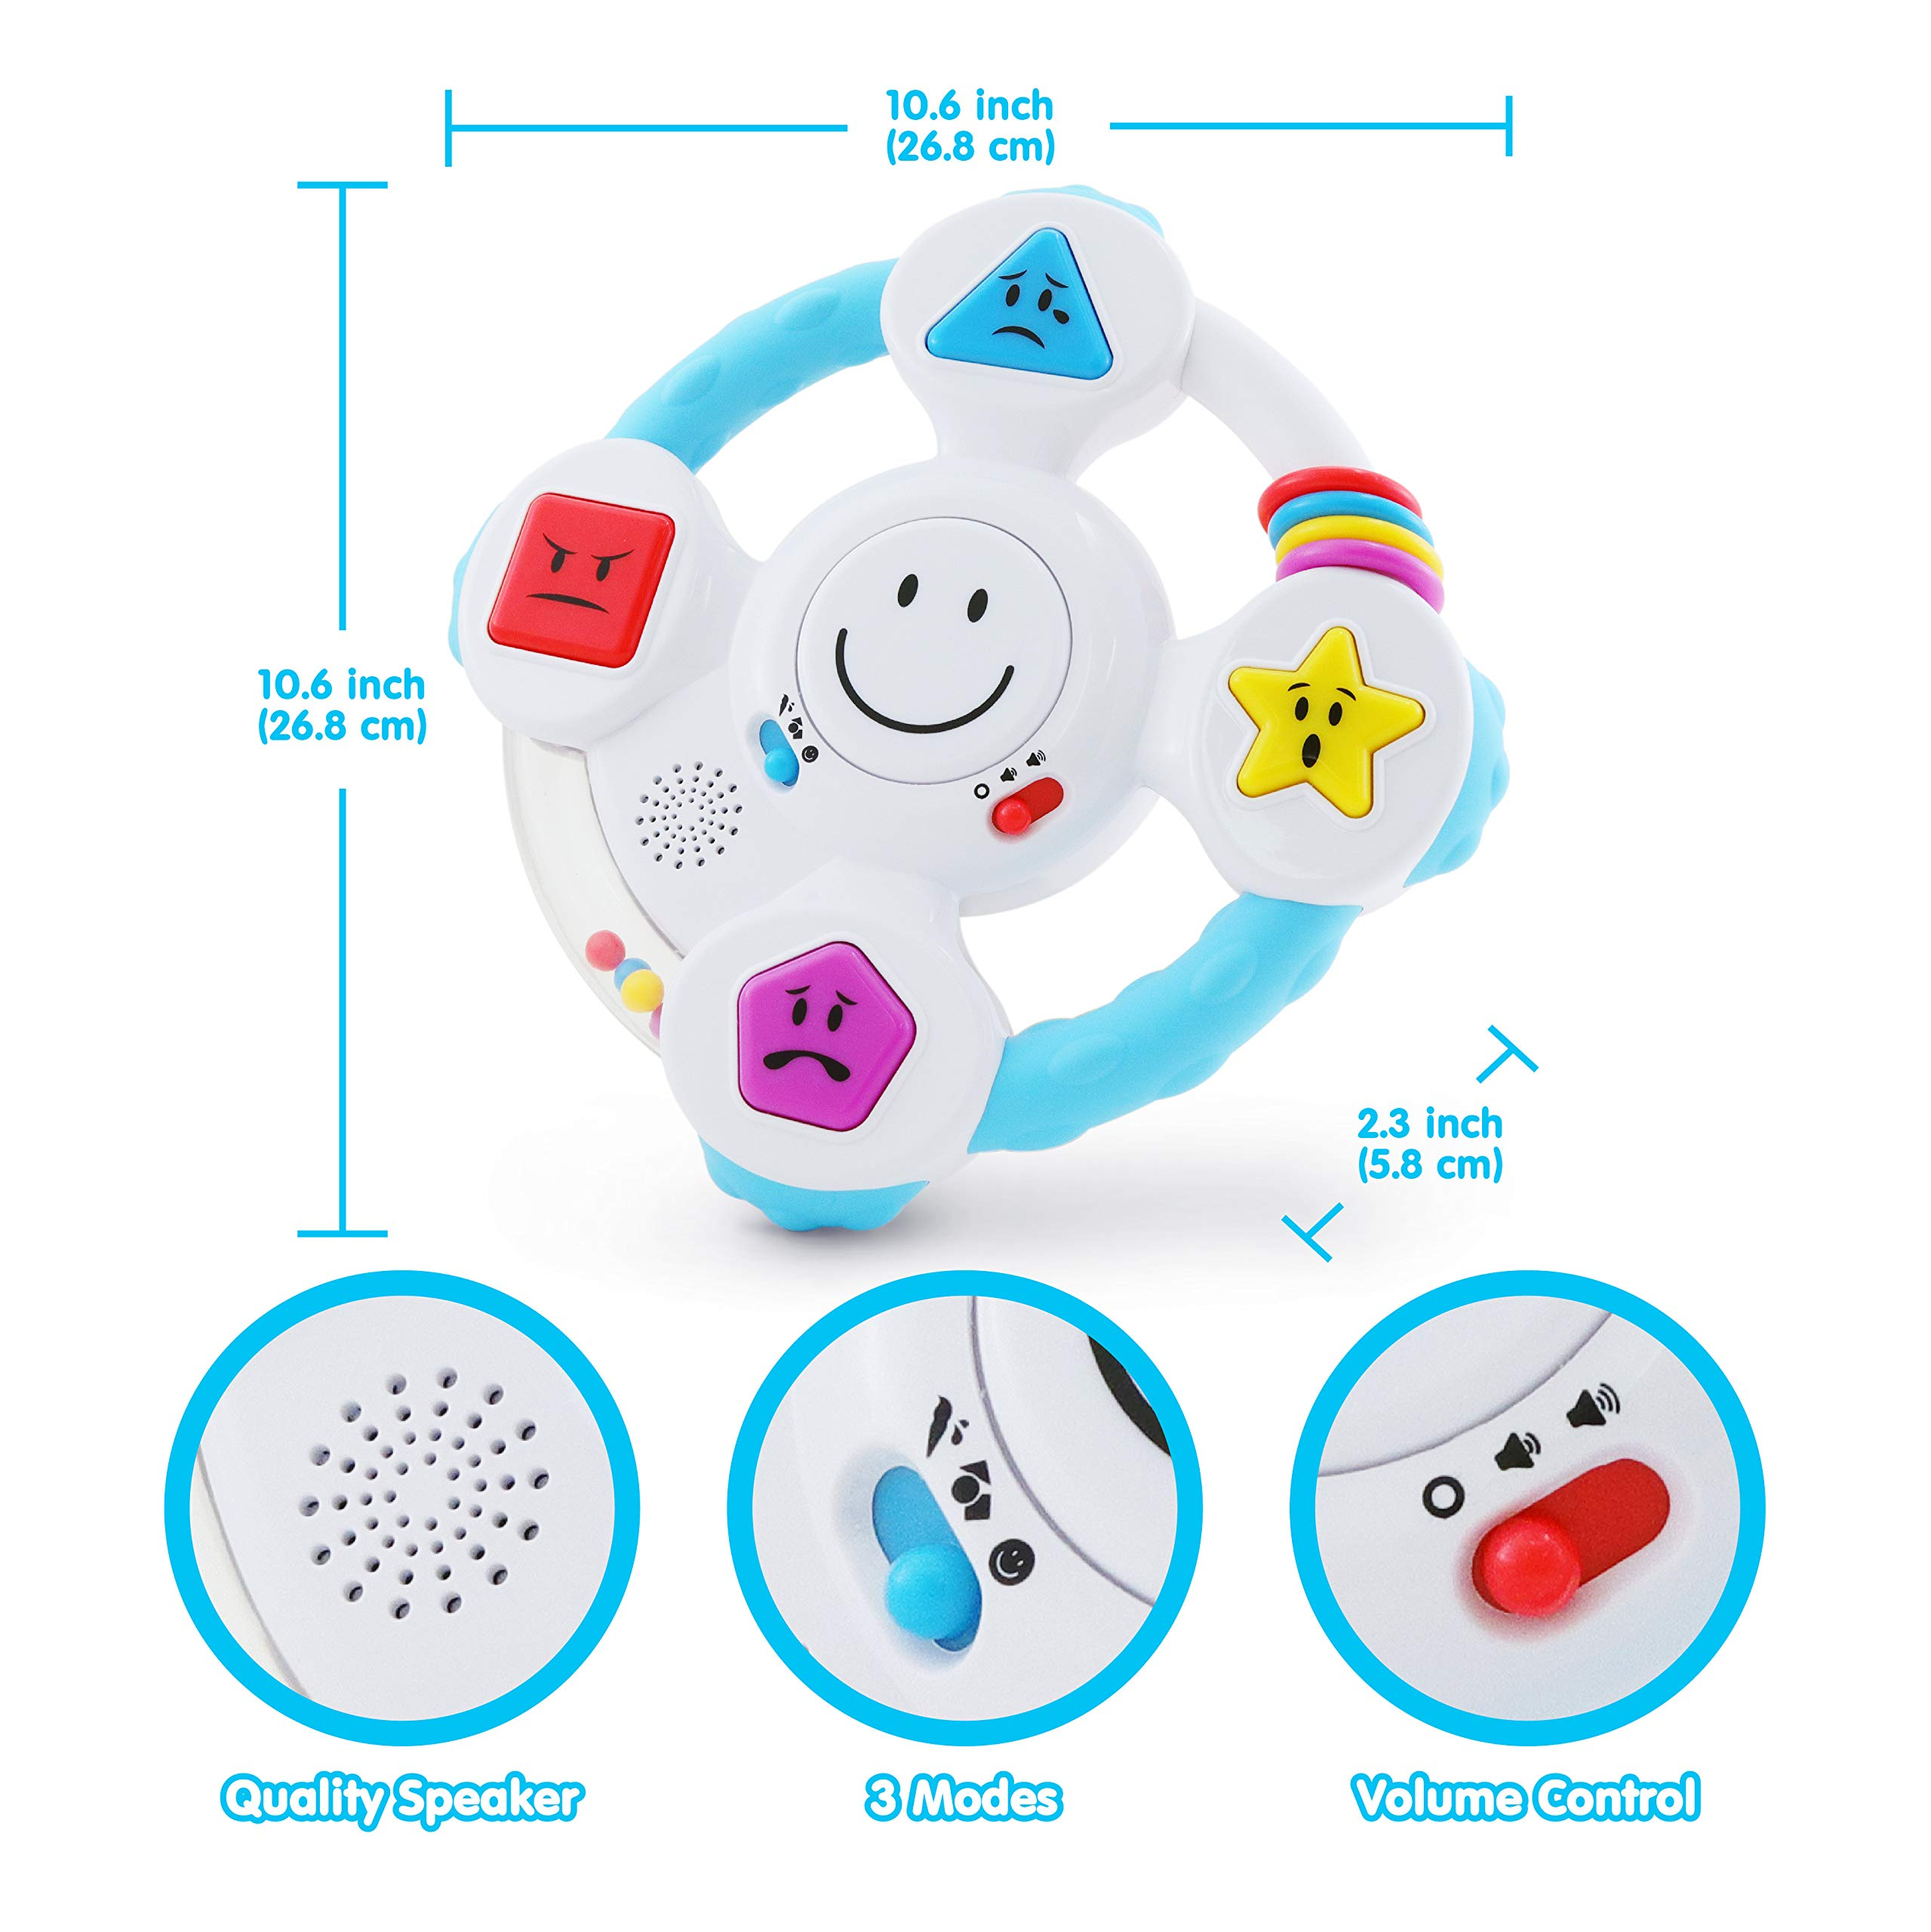 BEST LEARNING My Spin & Learn Steering Wheel - Interactive Educational Light-Up Toddler Toys for 6-36 Months Old Infants & Toddlers - Colors, Shapes, Emotions & Music Game for Babies by BEST LEARNING (Image #5)